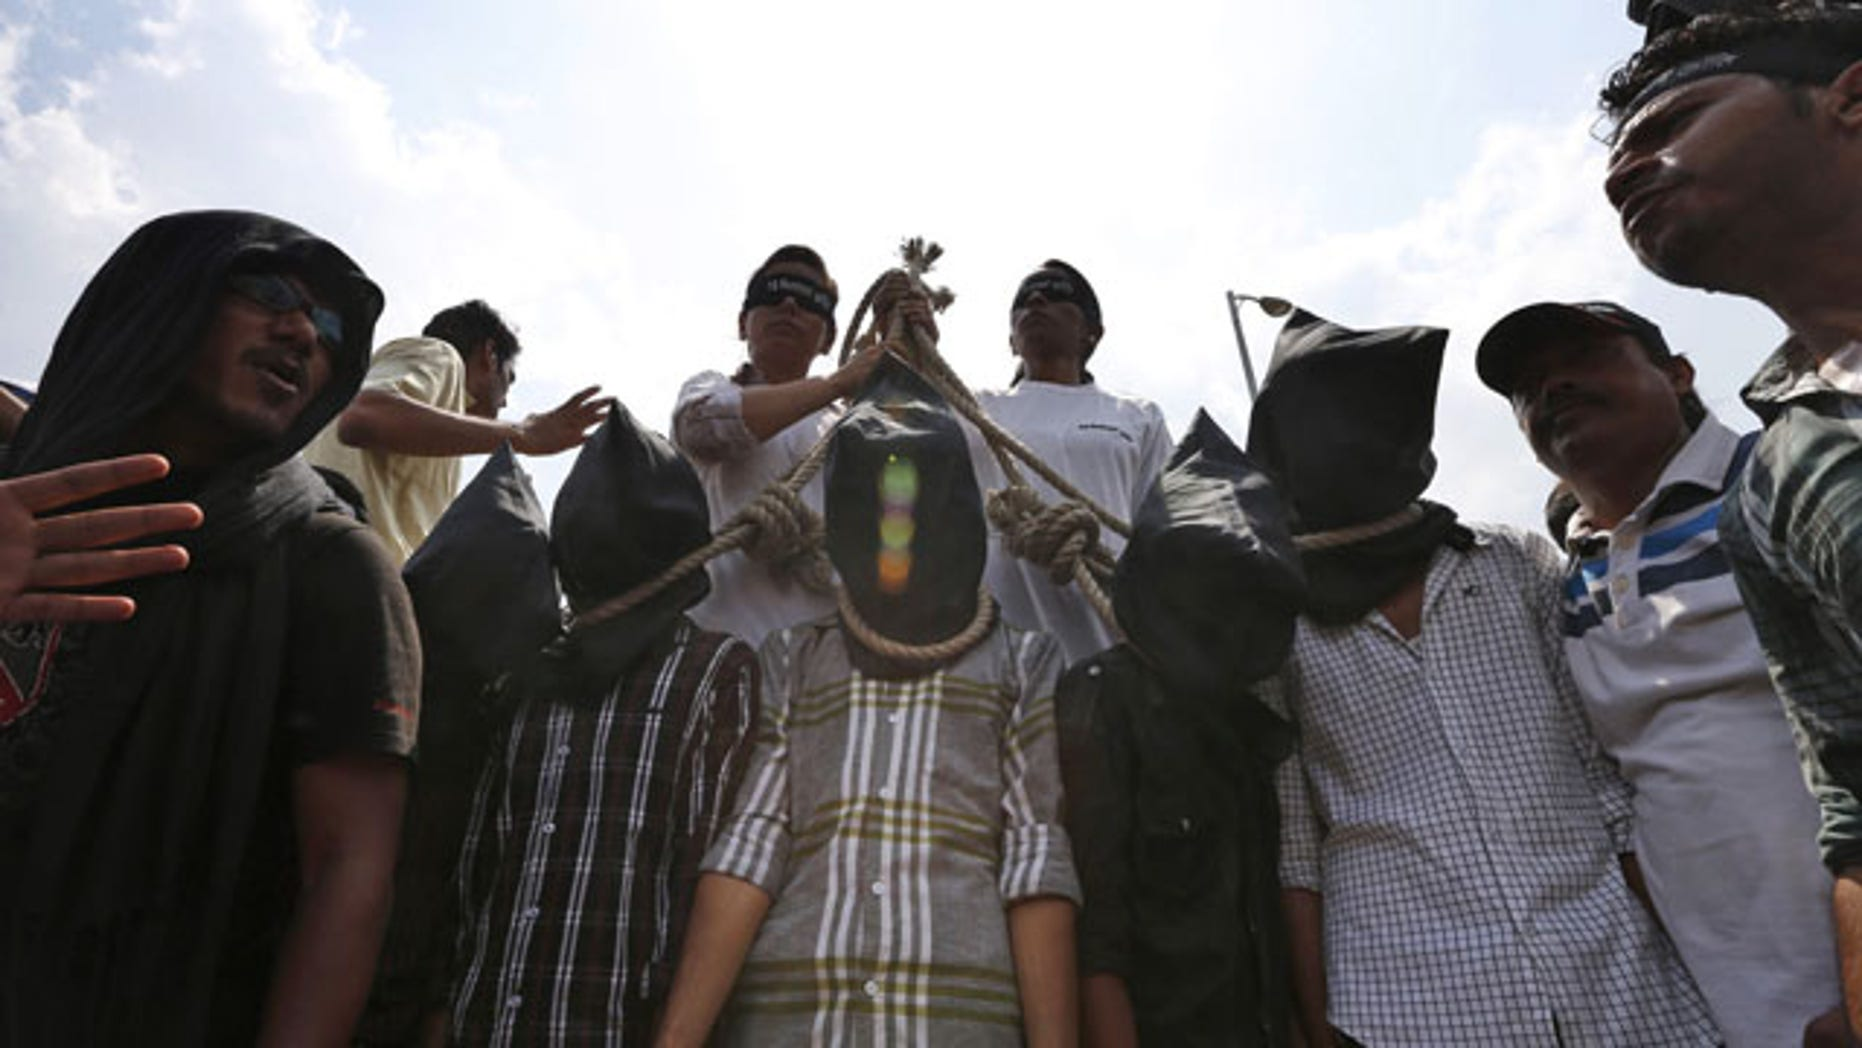 September 10, 2013: Indian protesters stage a mock hanging scene to demand death sentence for four men after a judge convicted them in the fatal gang rape of a young woman on a moving New Delhi bus last year, in New Delhi, India.